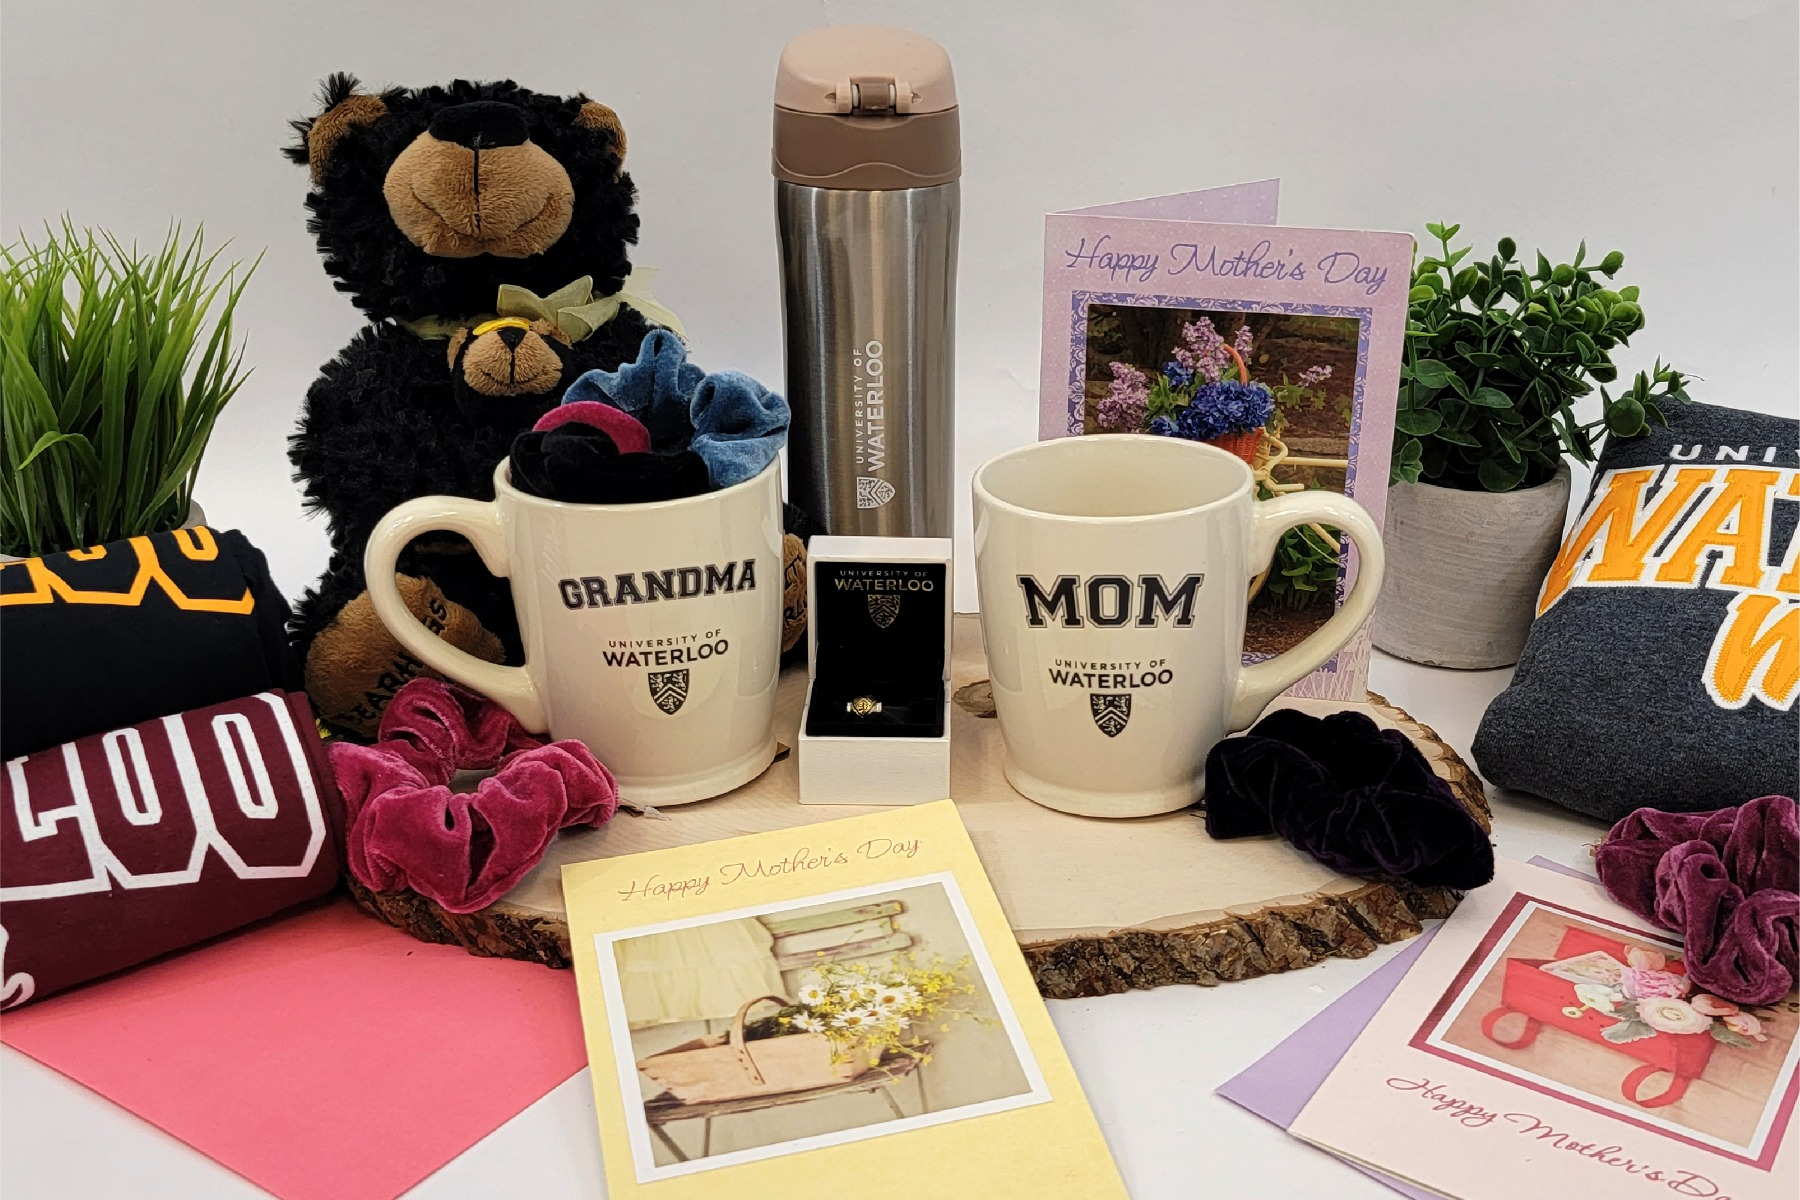 Mother's Day cards and assorted gifts for mom